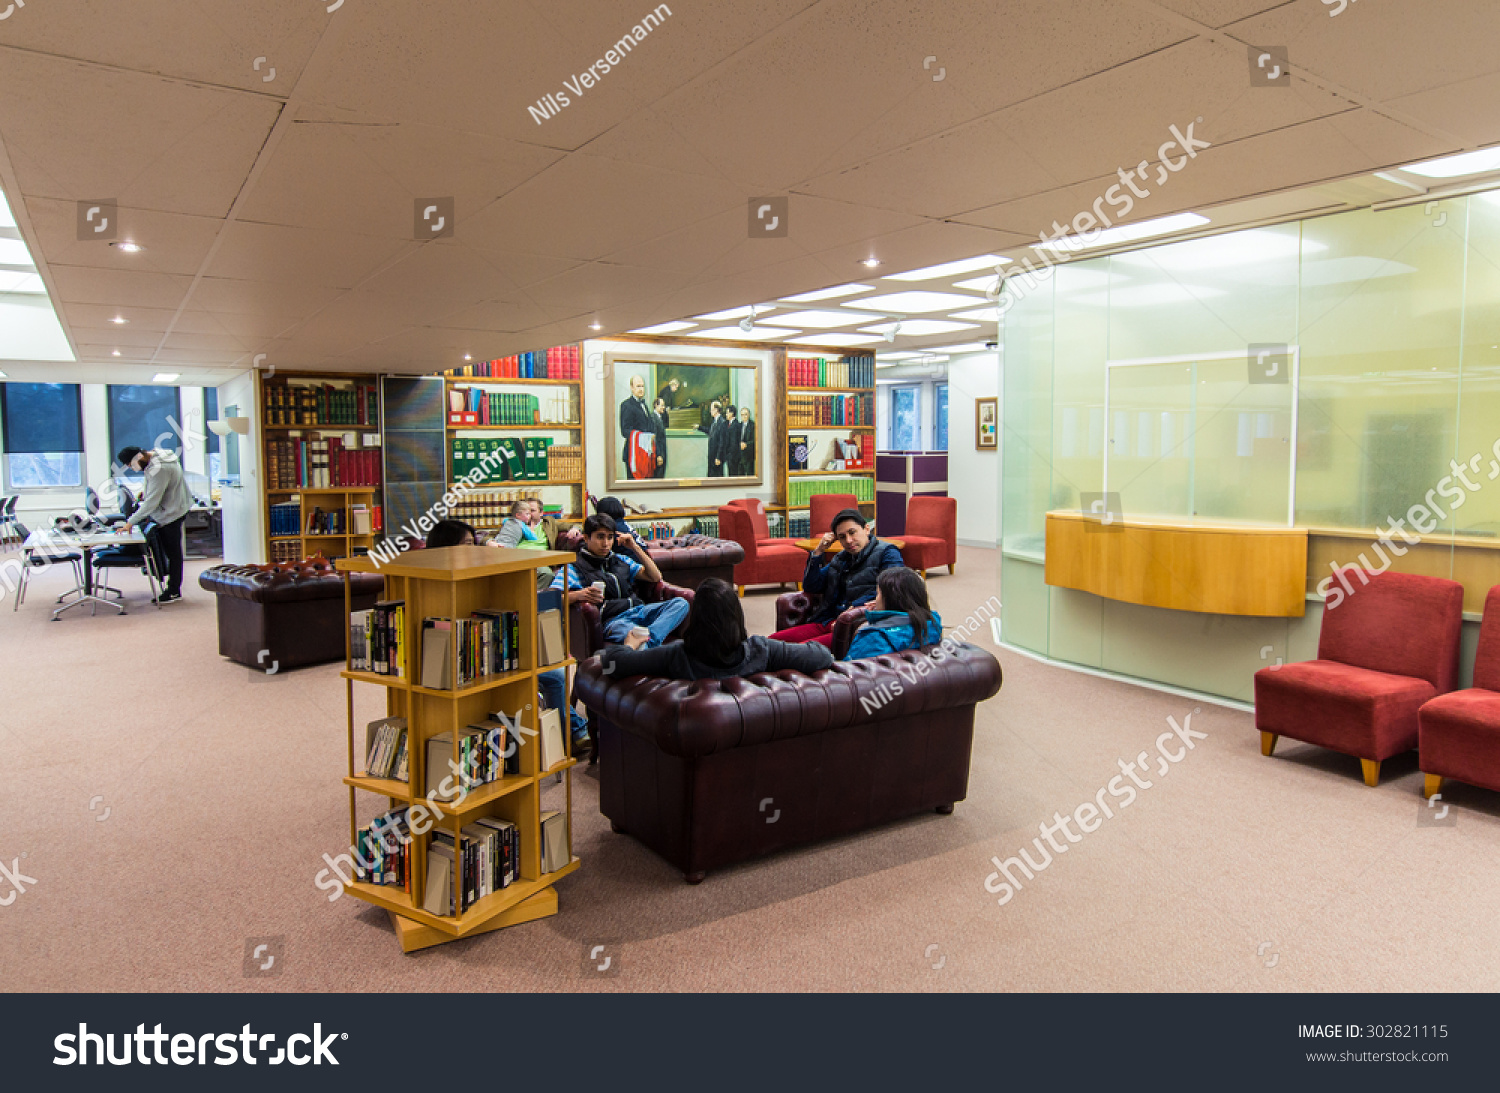 Library Furniture Australia Melbourne Australia August 2 2015 Law Stock Photo Edit Now